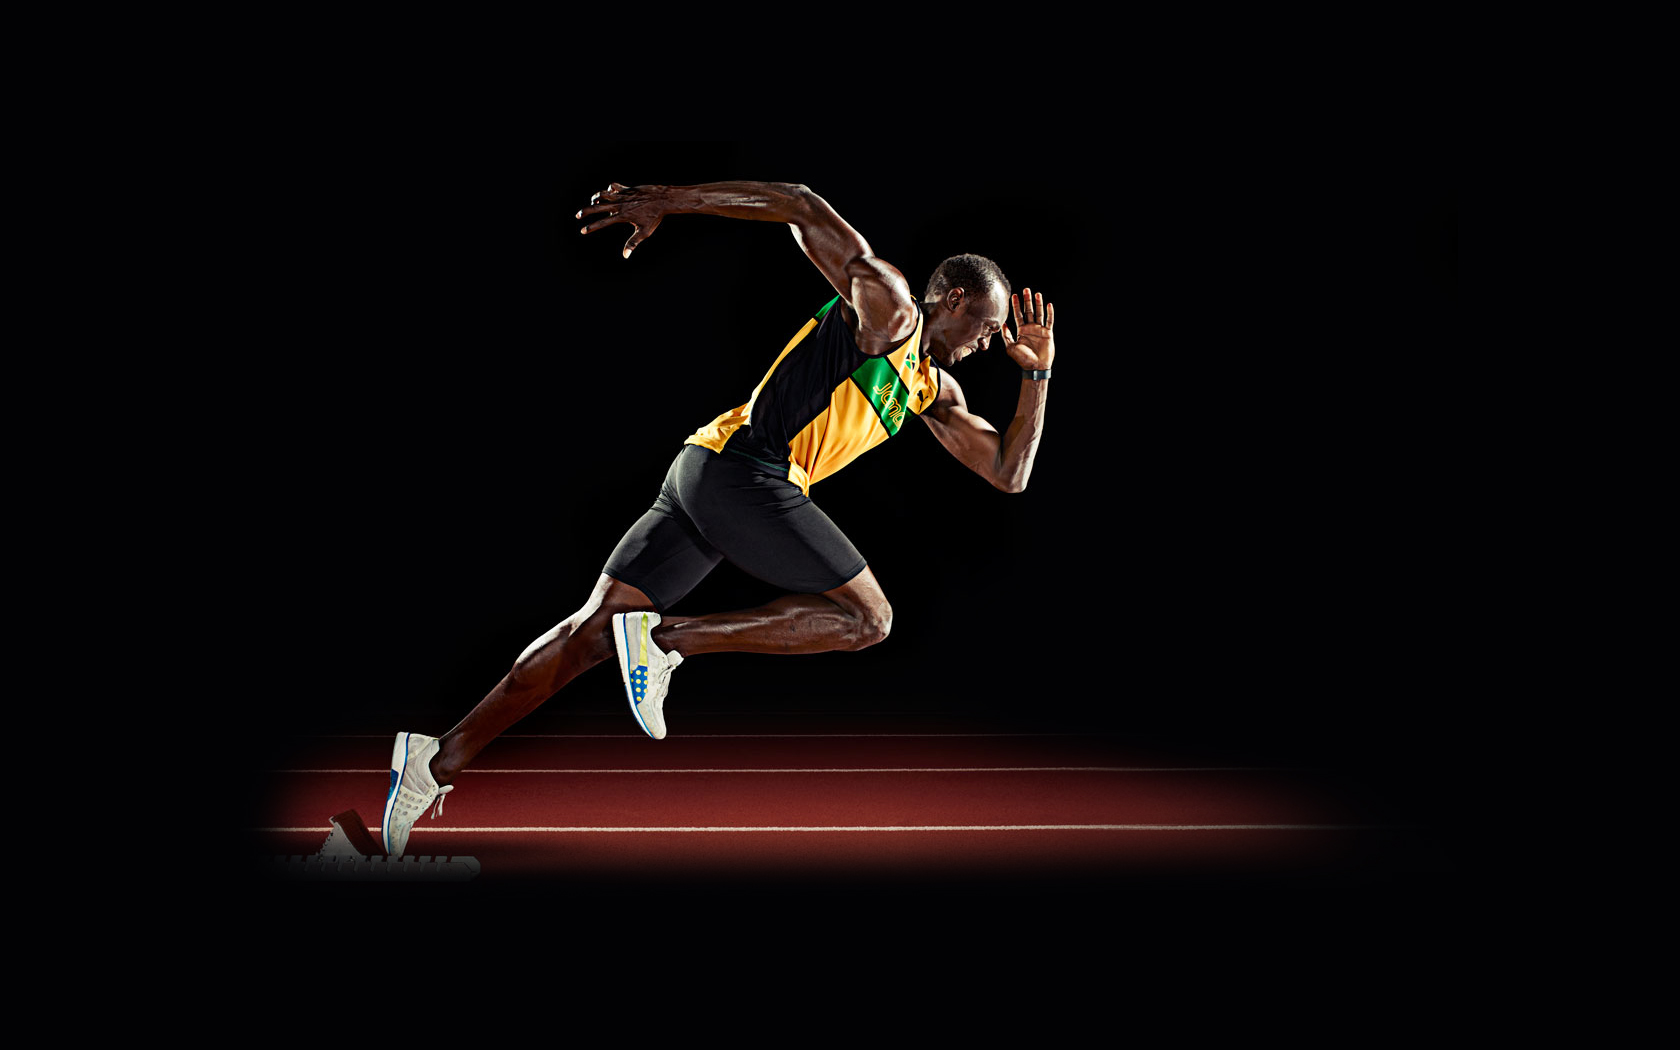 usain bolt new images